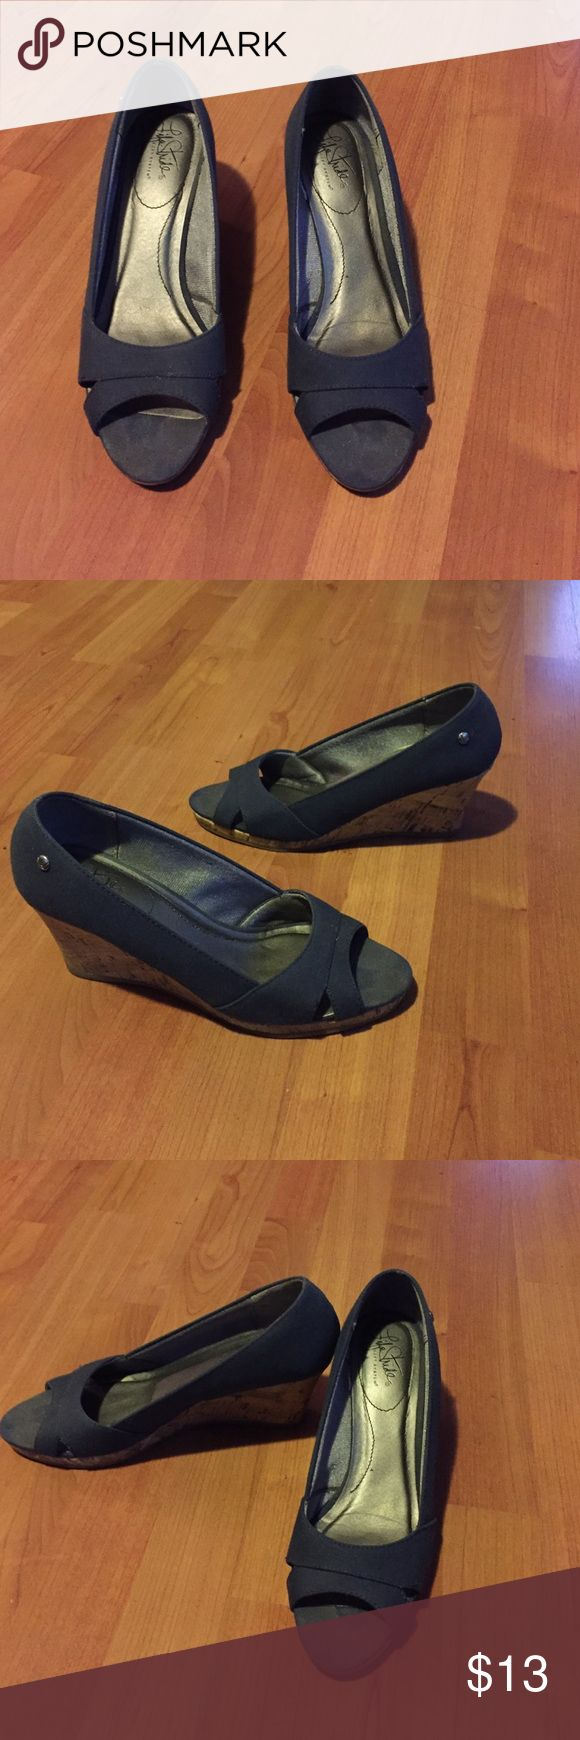 Cute navy blue wedges Only worn twice (once for an outdoor event). Like new condition, except for the toe area with some wear from outdoor use. This is not noticeable when you're wearing them. No other issues. They are cute and comfortable! The shoe material is fabric. Great for many outfits!! Life Stride Shoes Wedges